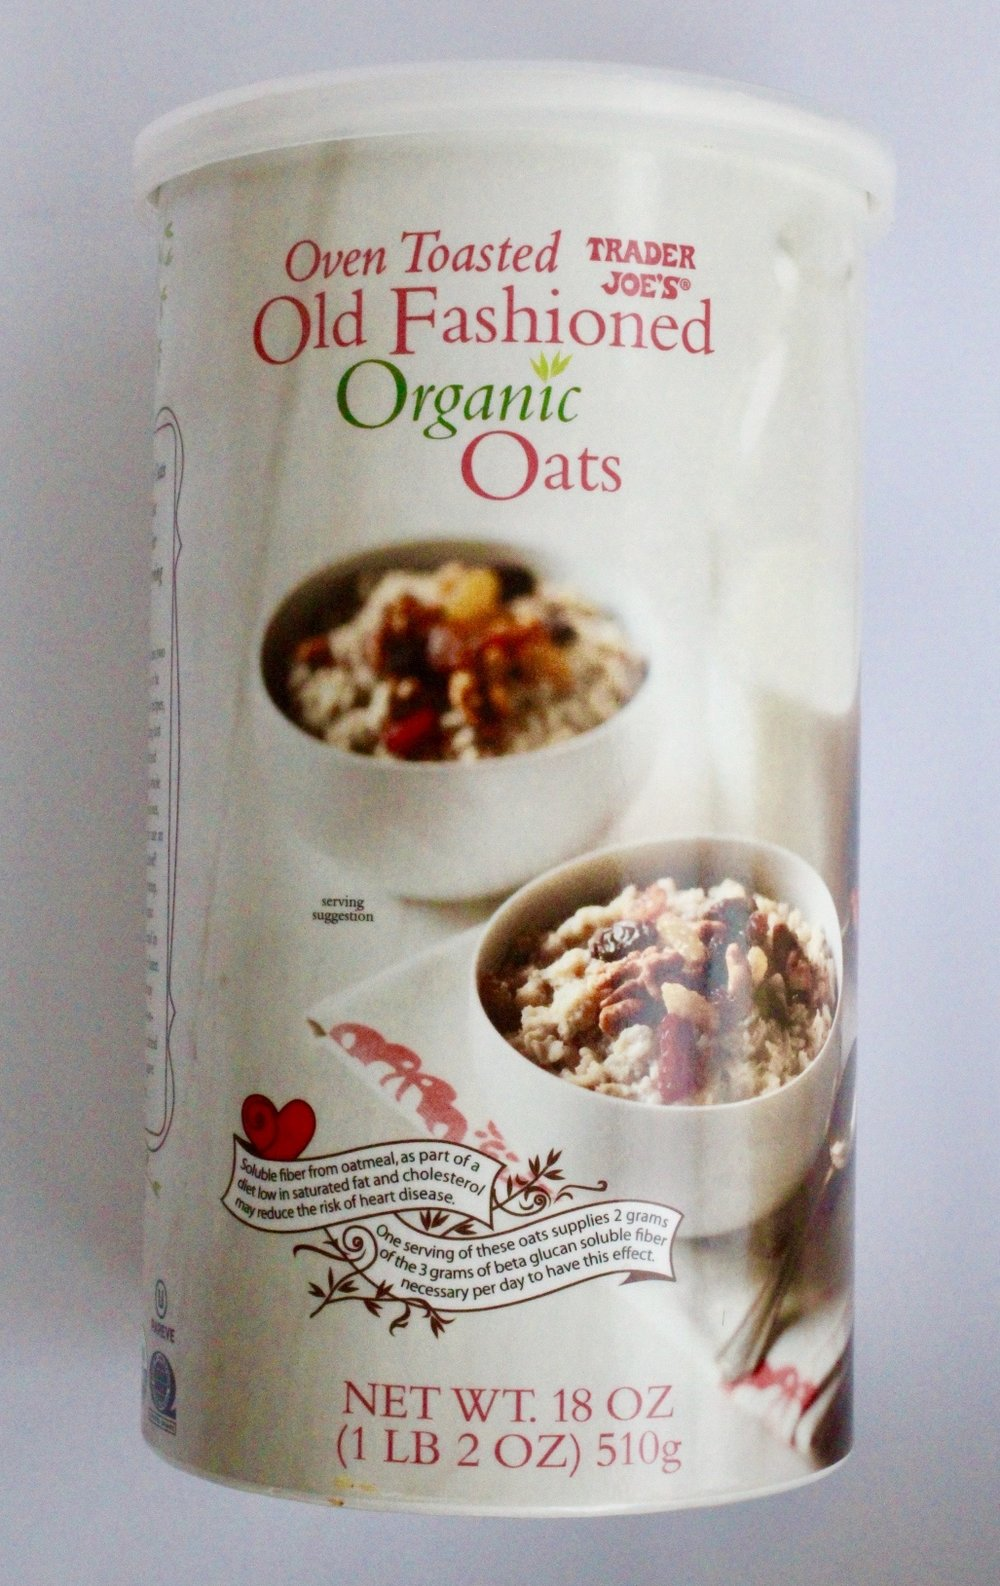 2. Old Fashioned Oats - I have oatmeal almost every single morning for breakfast, and these are my go-to old fashioned oats! While I'm not gluten-free, I love how many options they have, along with a whole list of GF products available on their website!